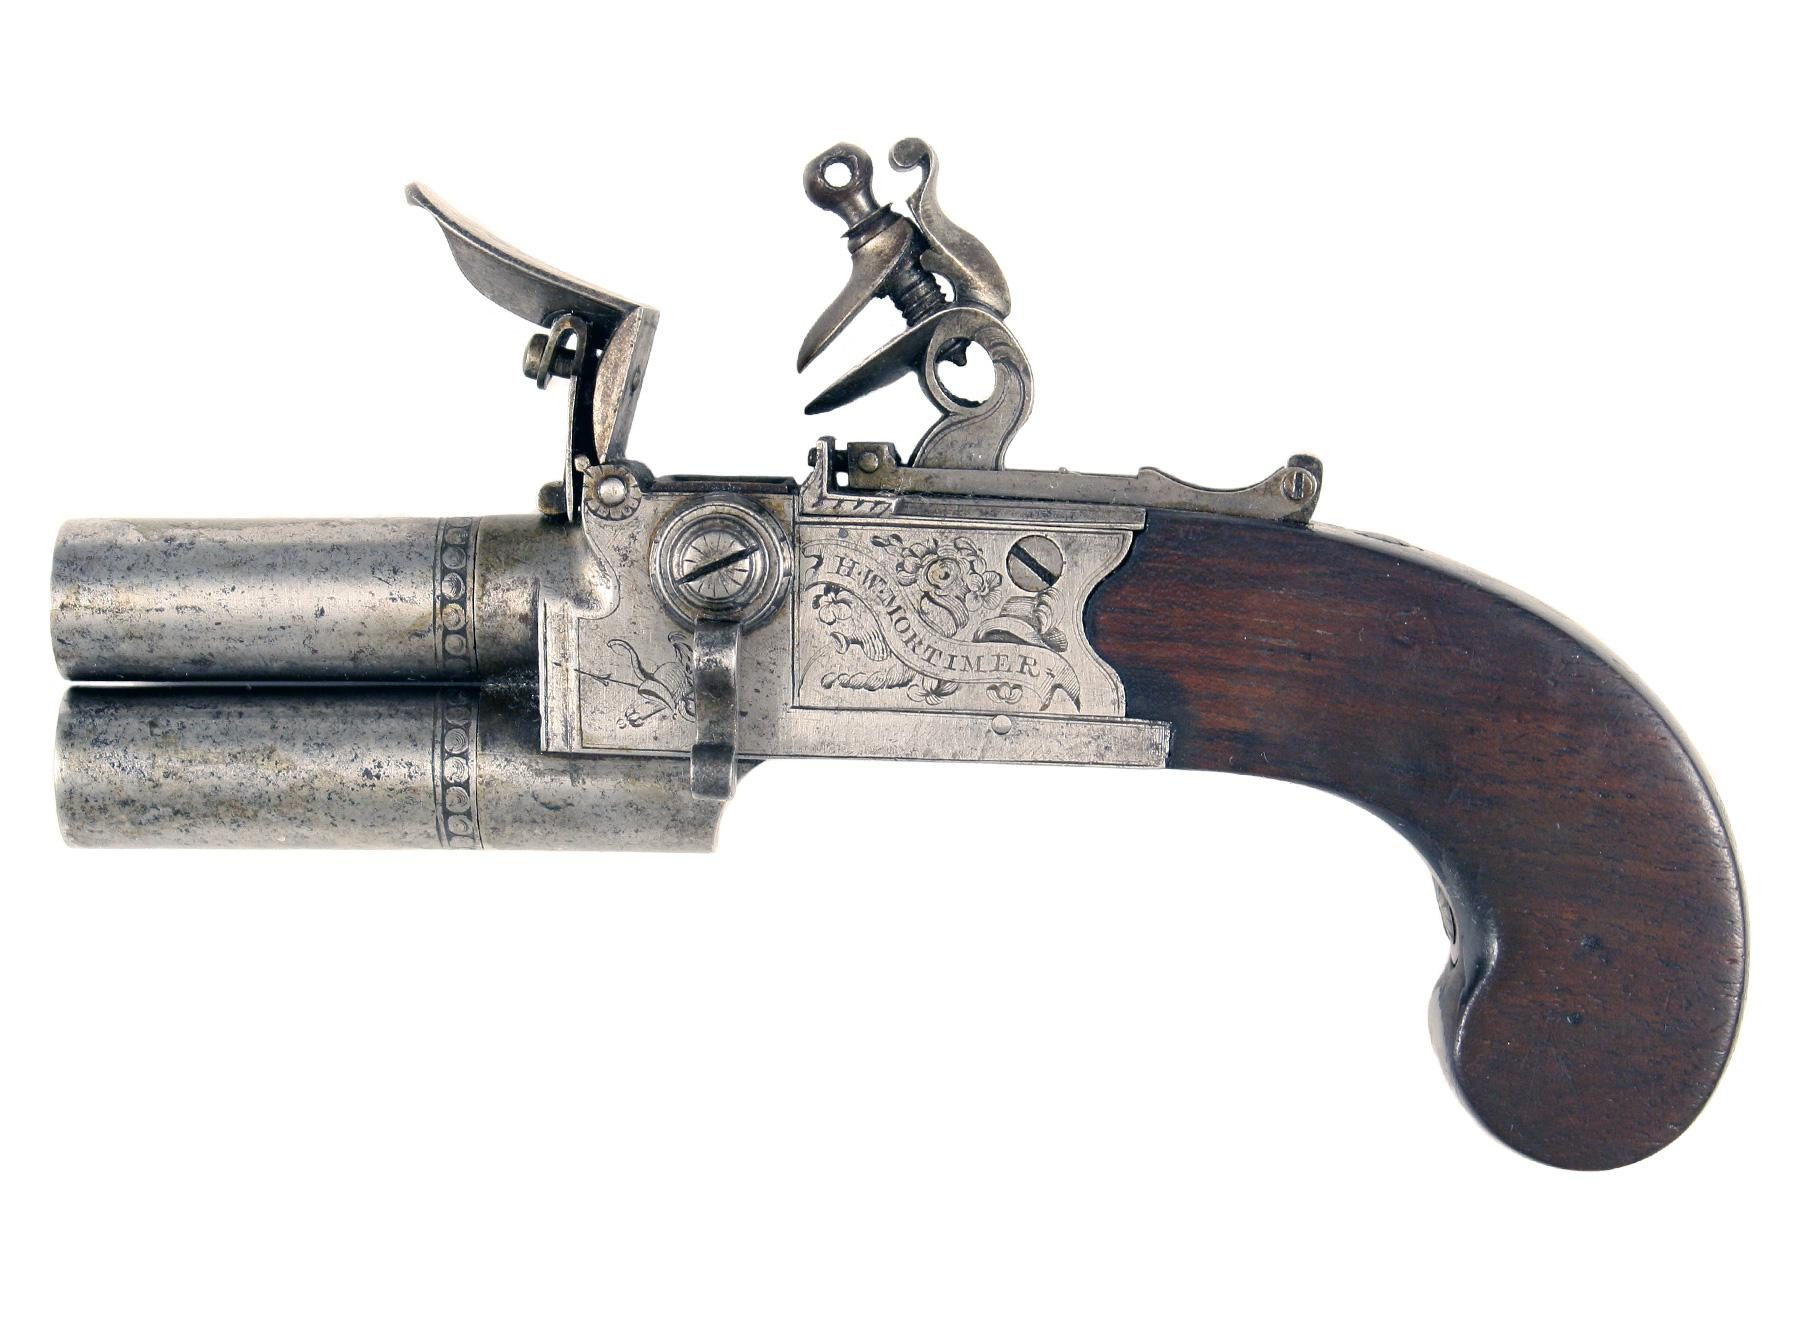 A Flintlock Tap-Action Pistol by H. W. Mortimer